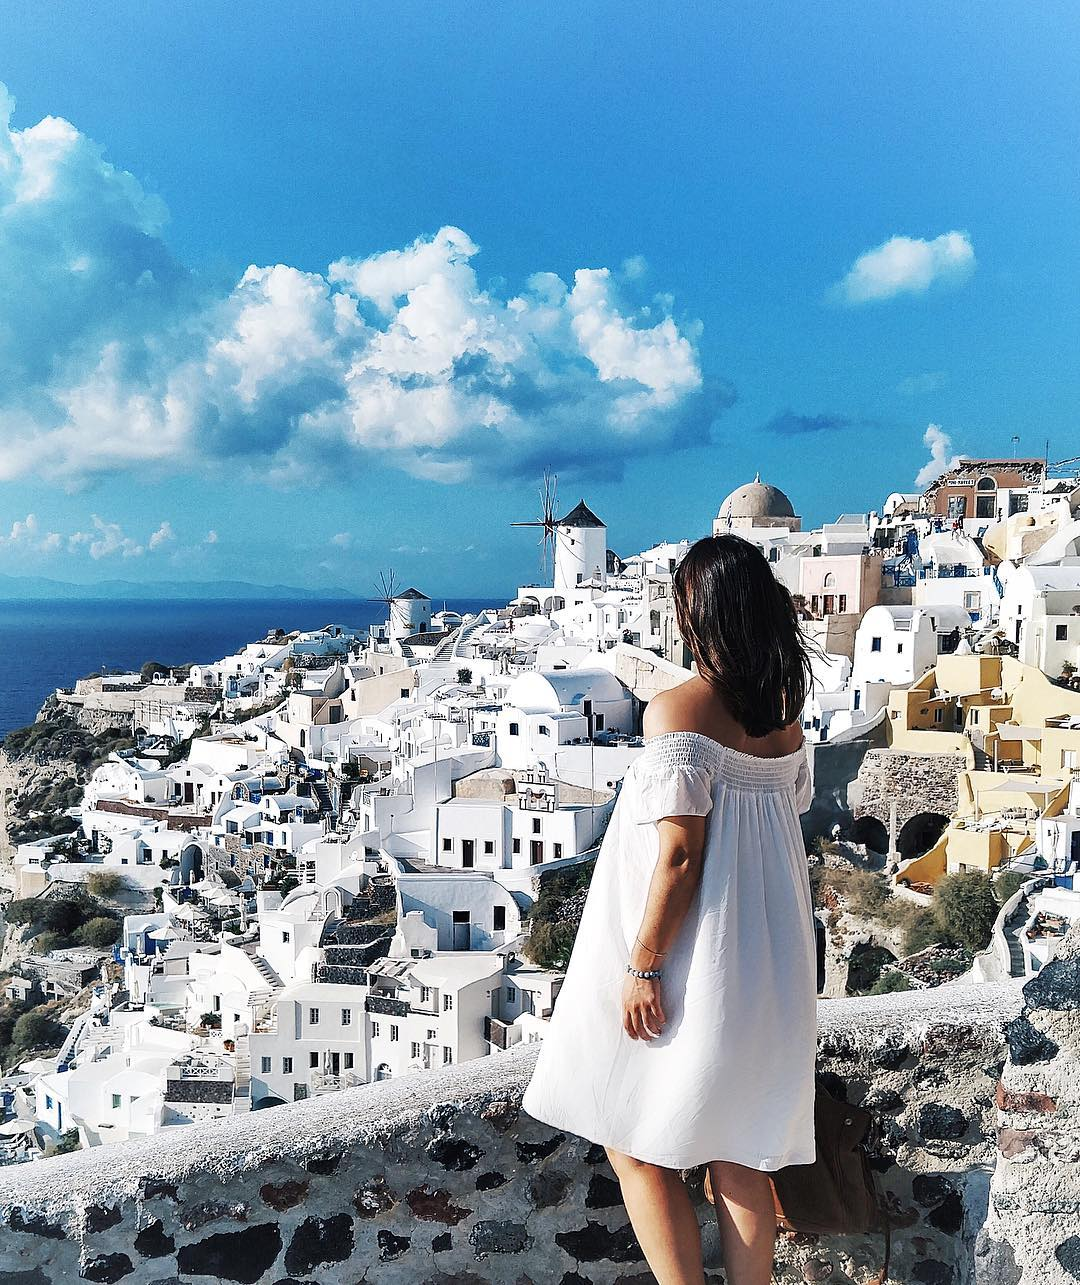 To Vogue or Bust in an Aritzia off the shoulder dress in Oia, Santorini, Greece